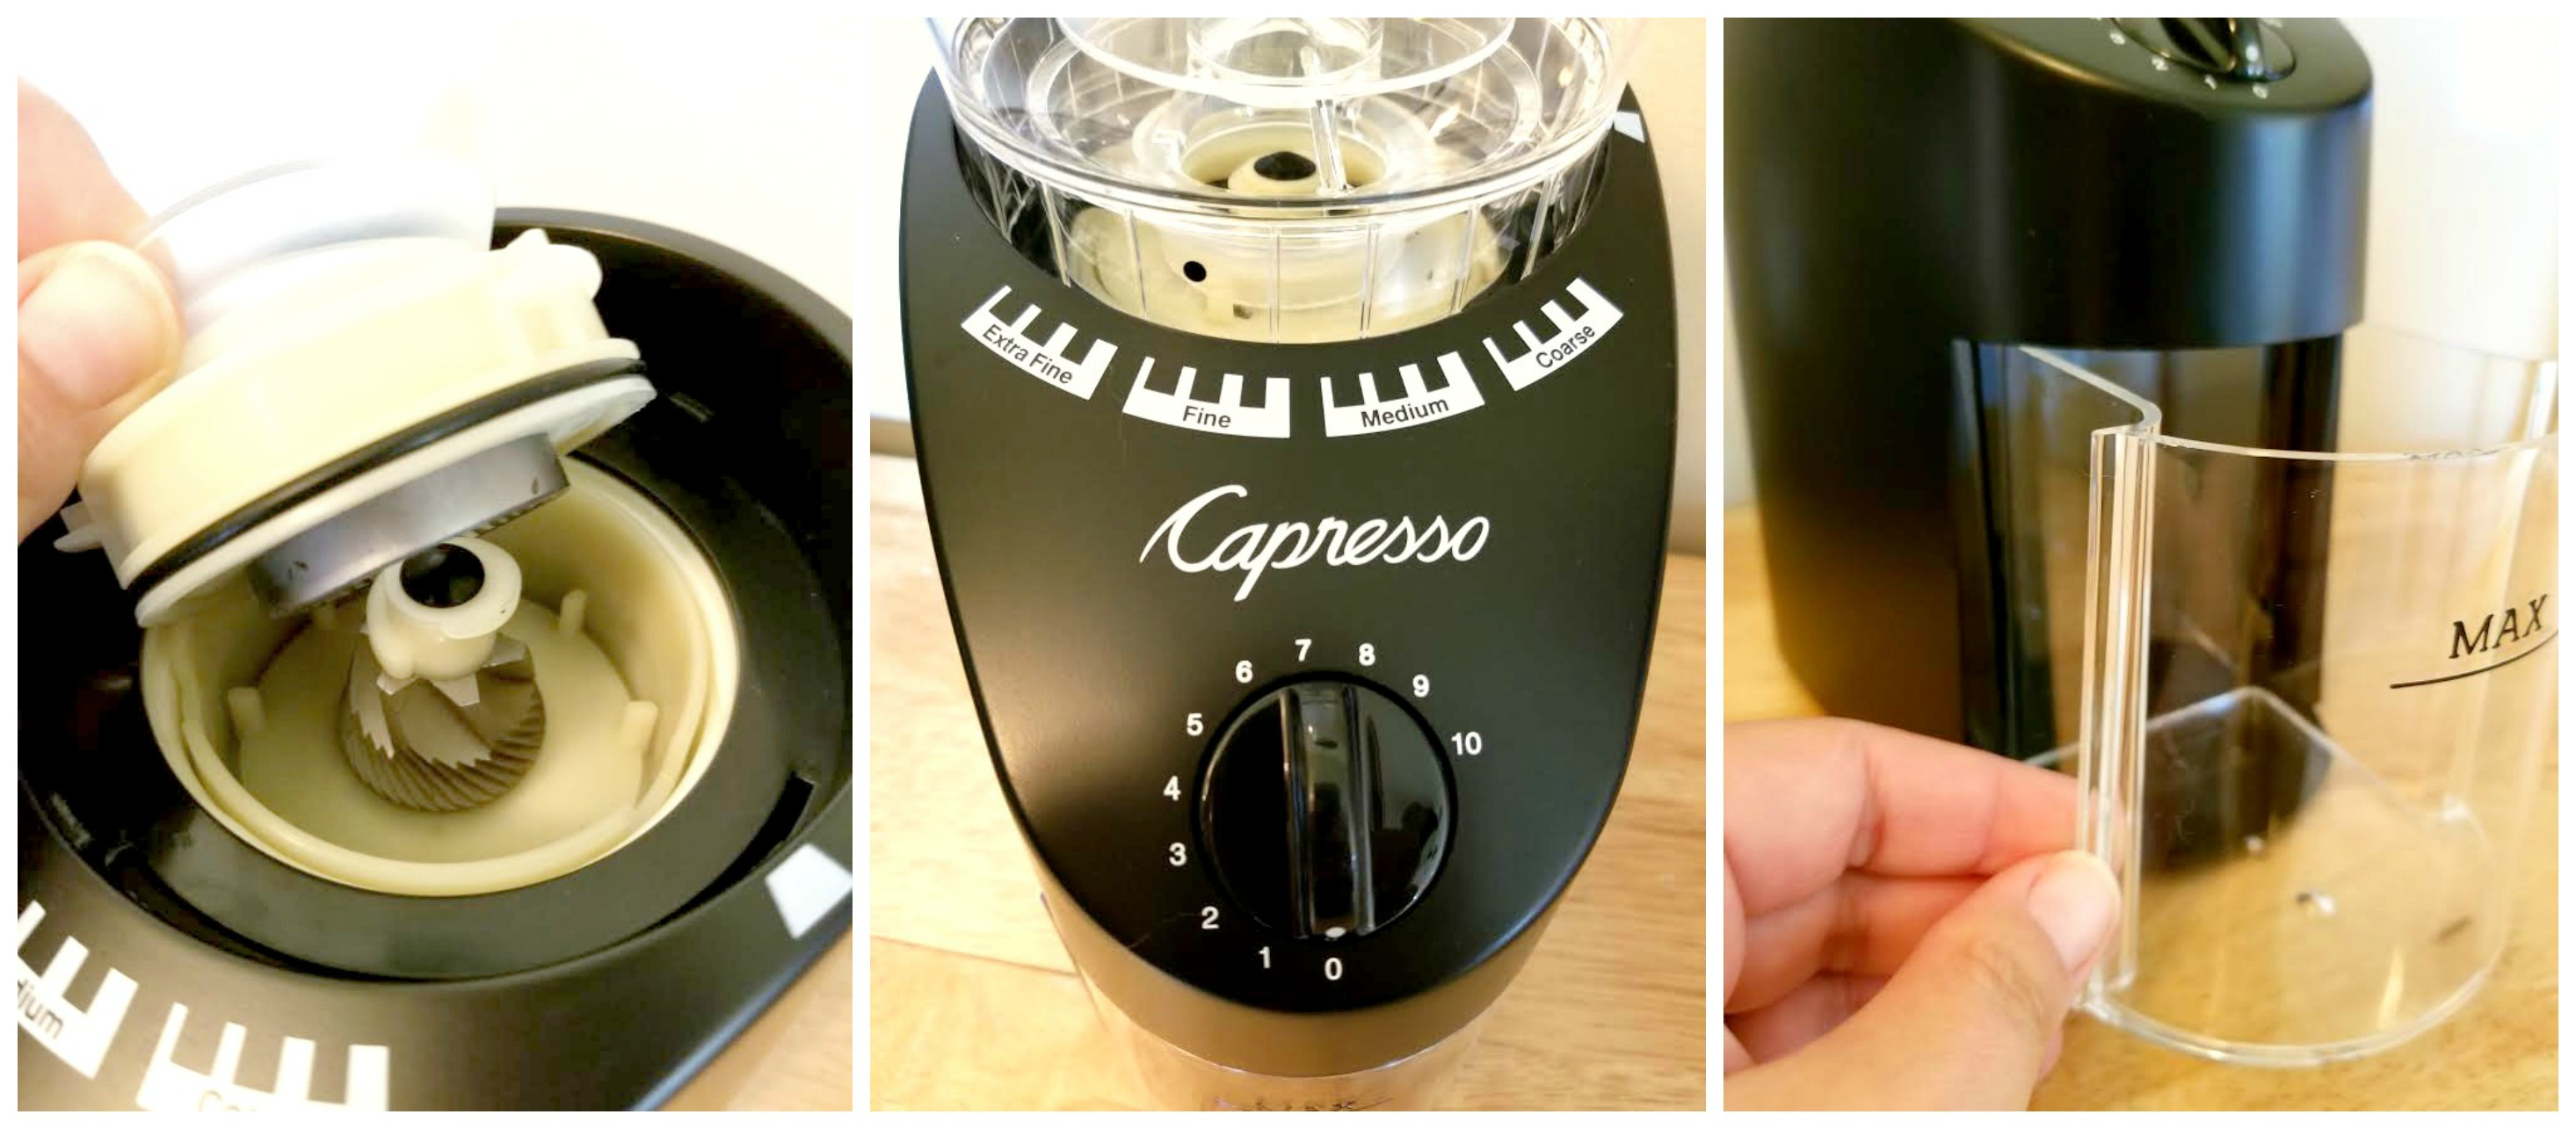 watch burr capresso grinder review hqdefault youtube infinity